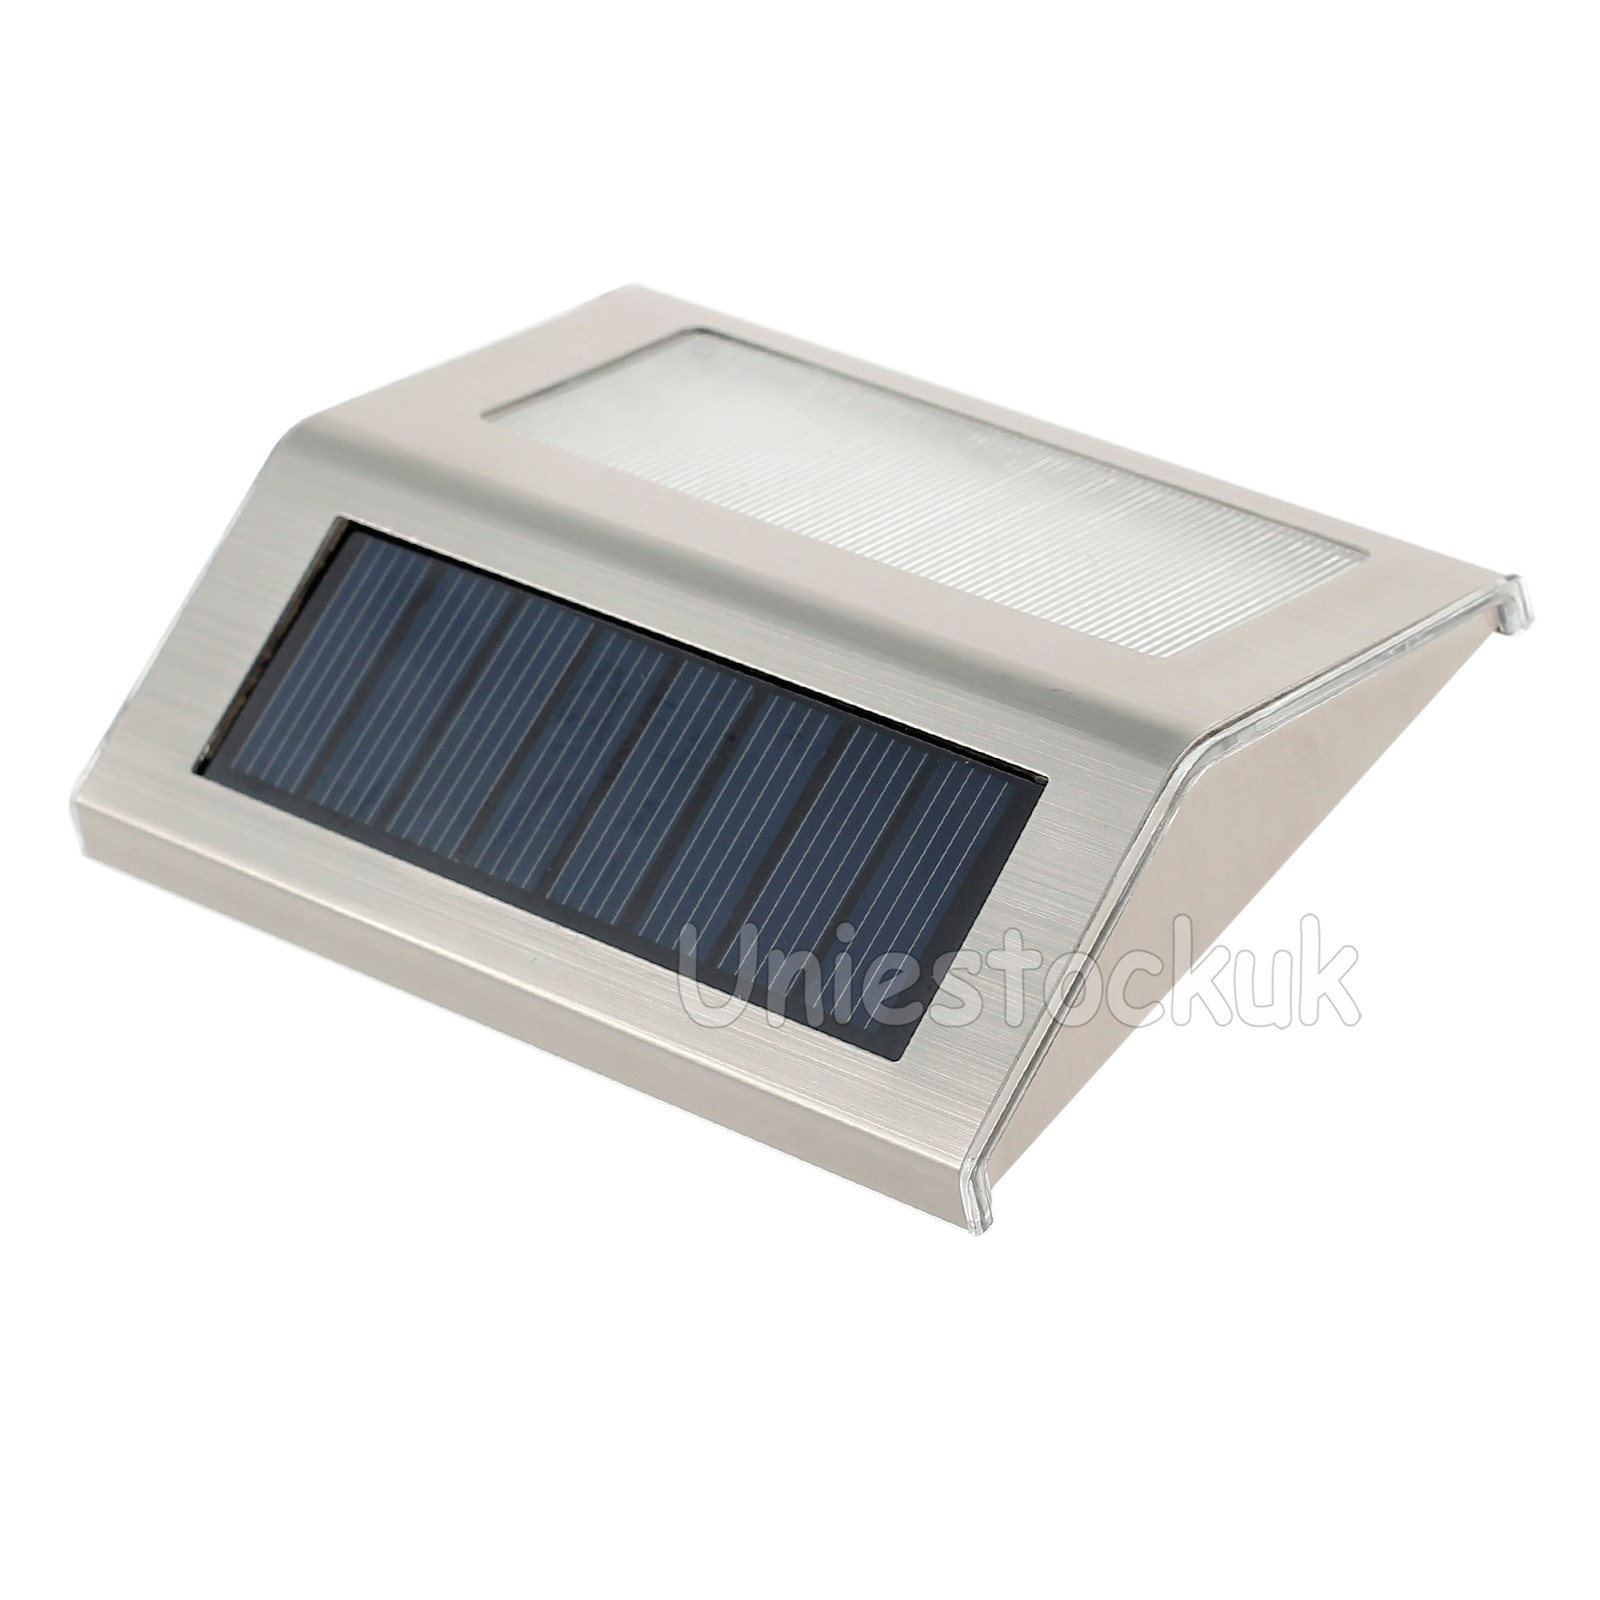 4 x 3led solar power stair lights outdoor garden pathway step decking wall lamp ebay - Solar deck lights for steps ...